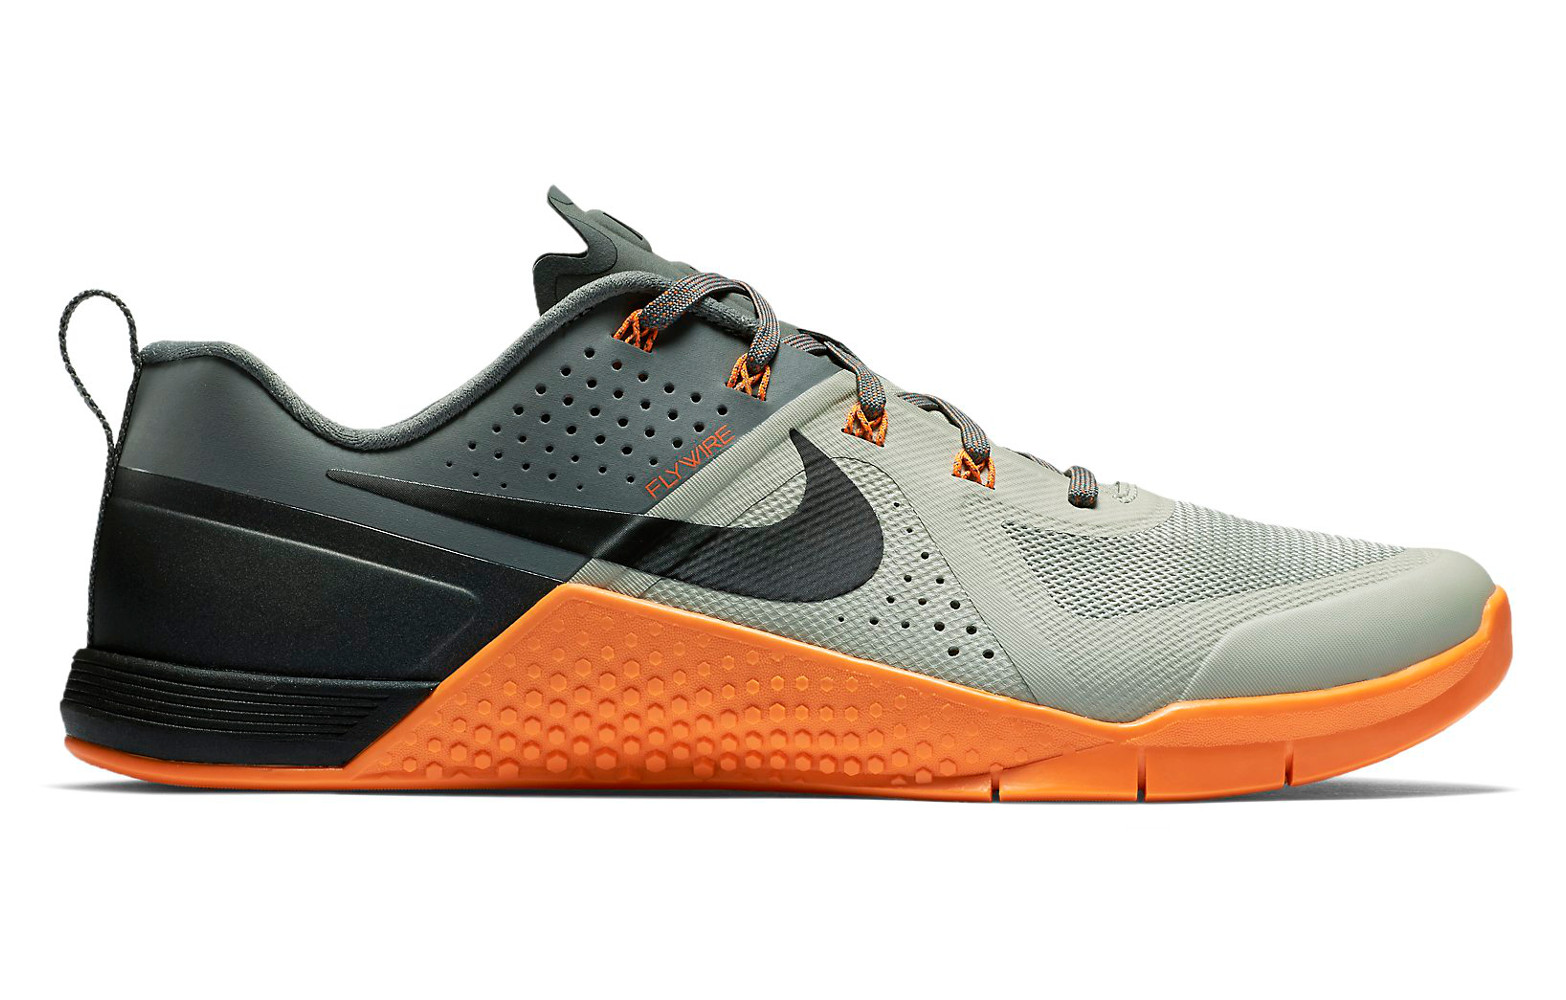 nike chaussures metcon 1 gris orange homme. Black Bedroom Furniture Sets. Home Design Ideas